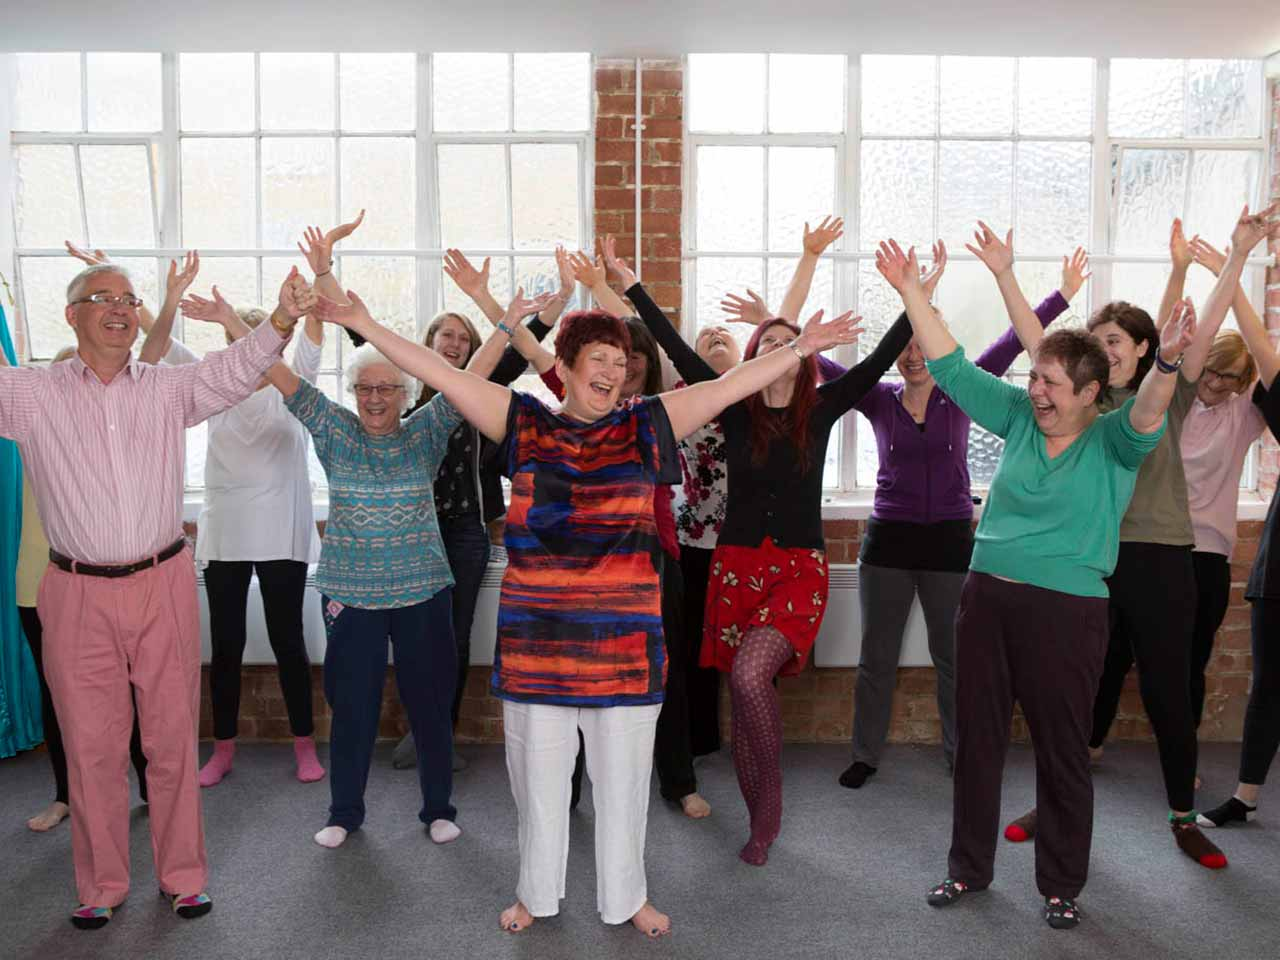 Claire Potter at a laughter yoga class